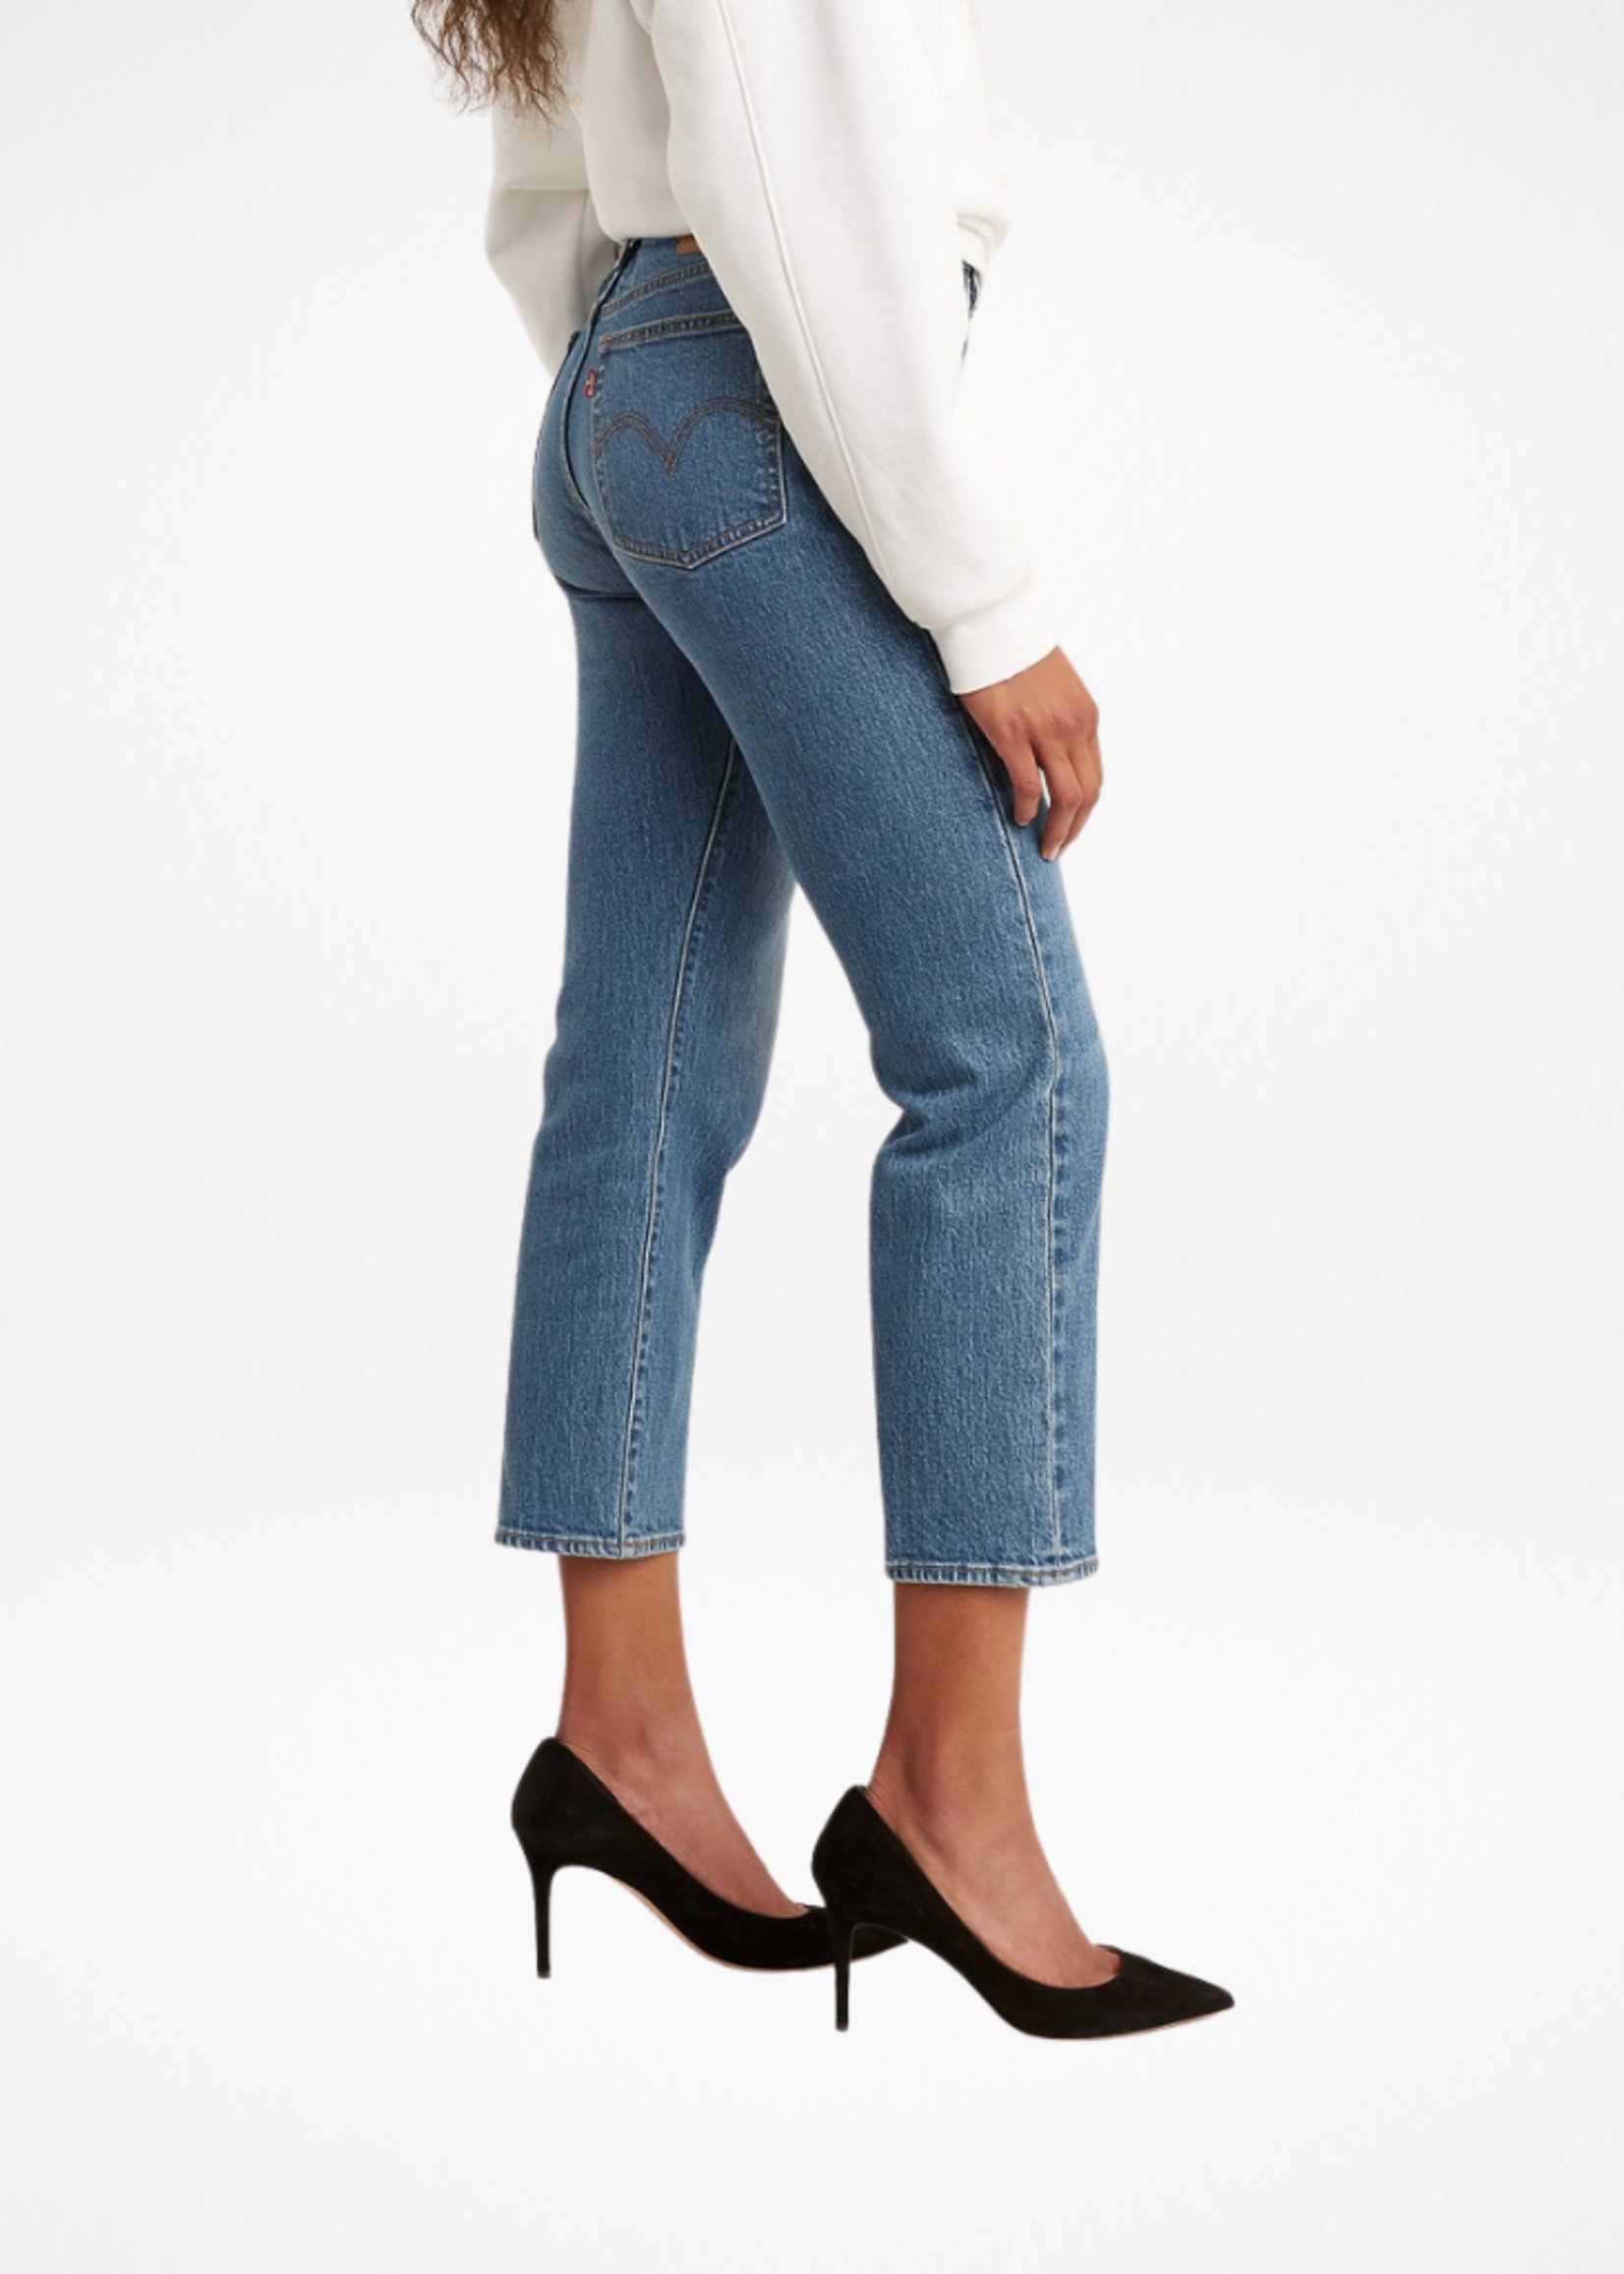 LEVI'S LEVI'S WEDGIE STRAIGHT FIT